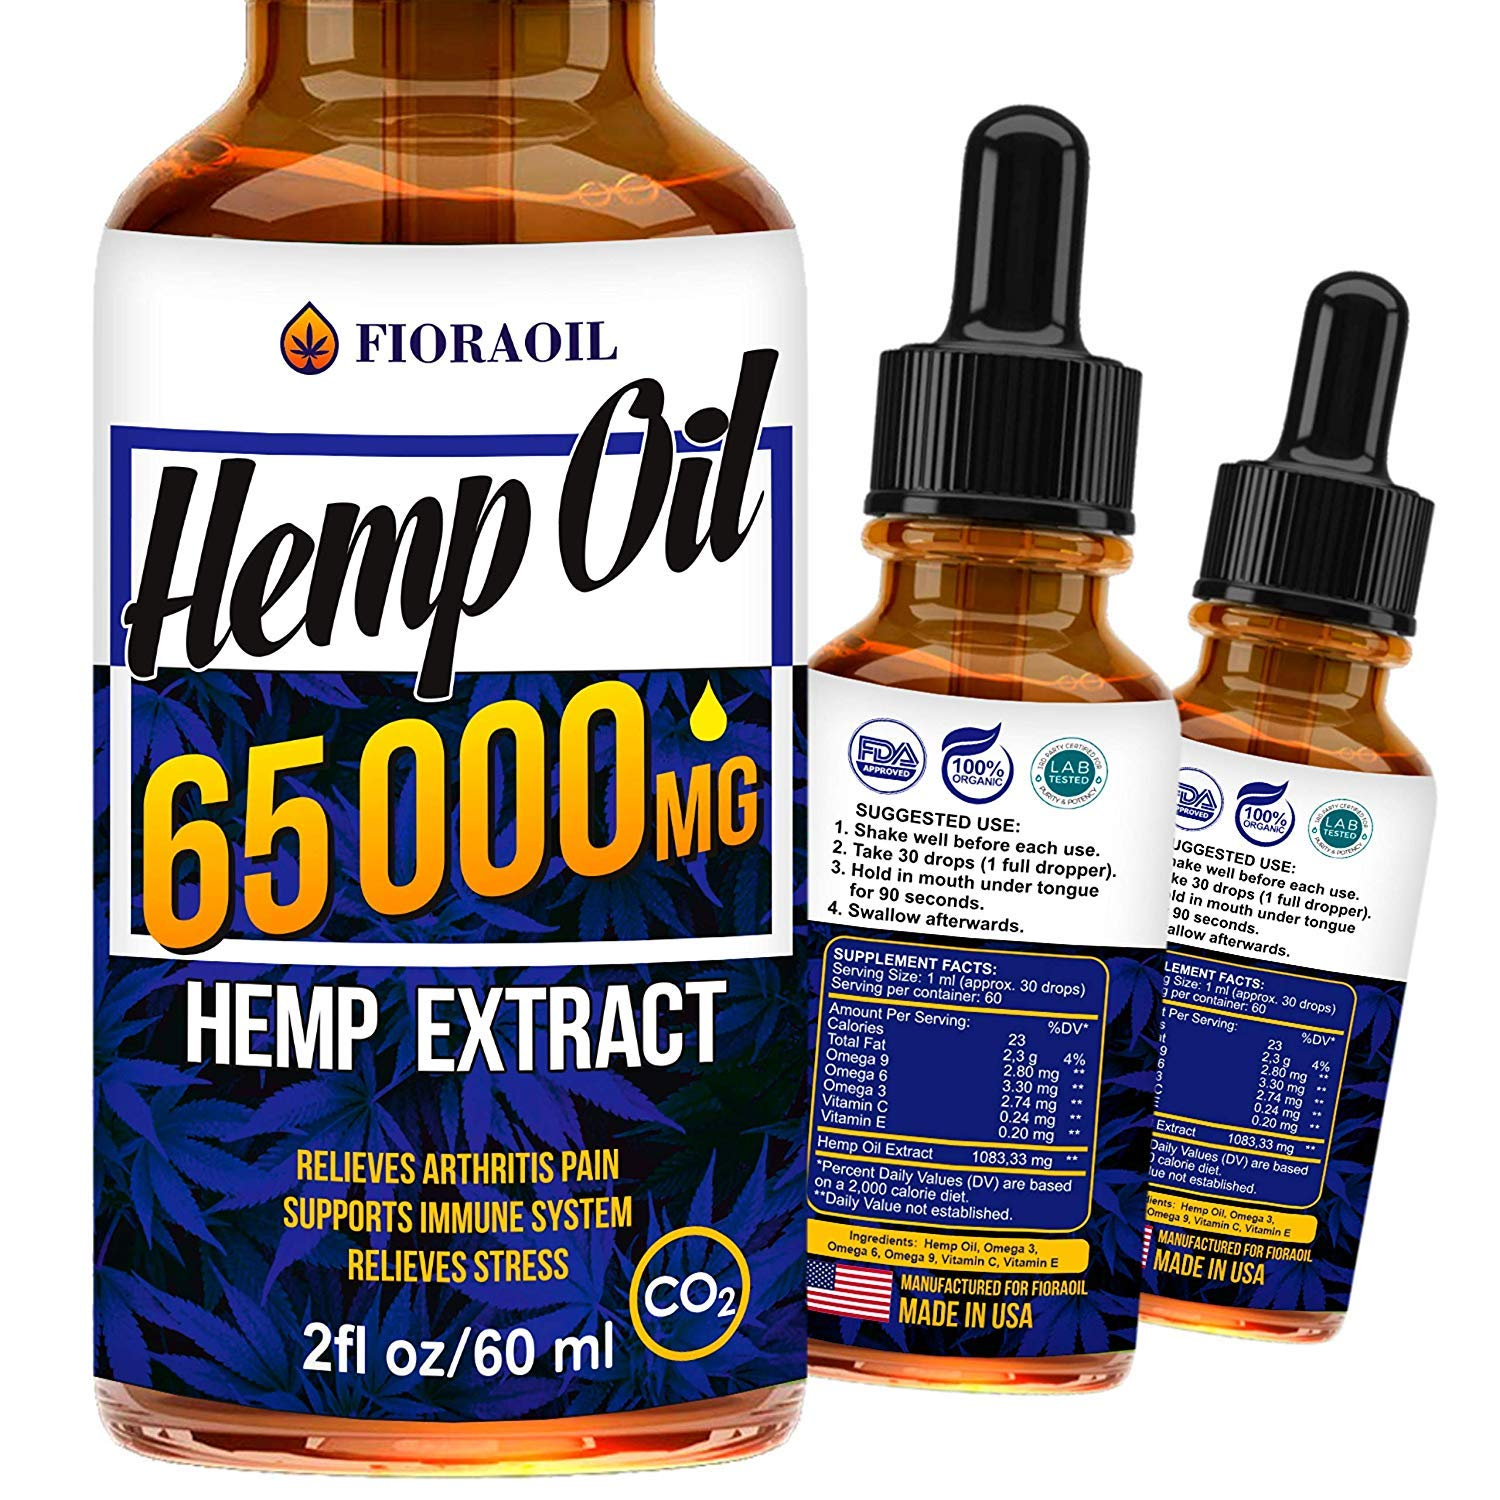 Hemp Oil Drops 65 000 MG - Effective Pain Reliever - Anti-Stress - Made in USA by Hempio